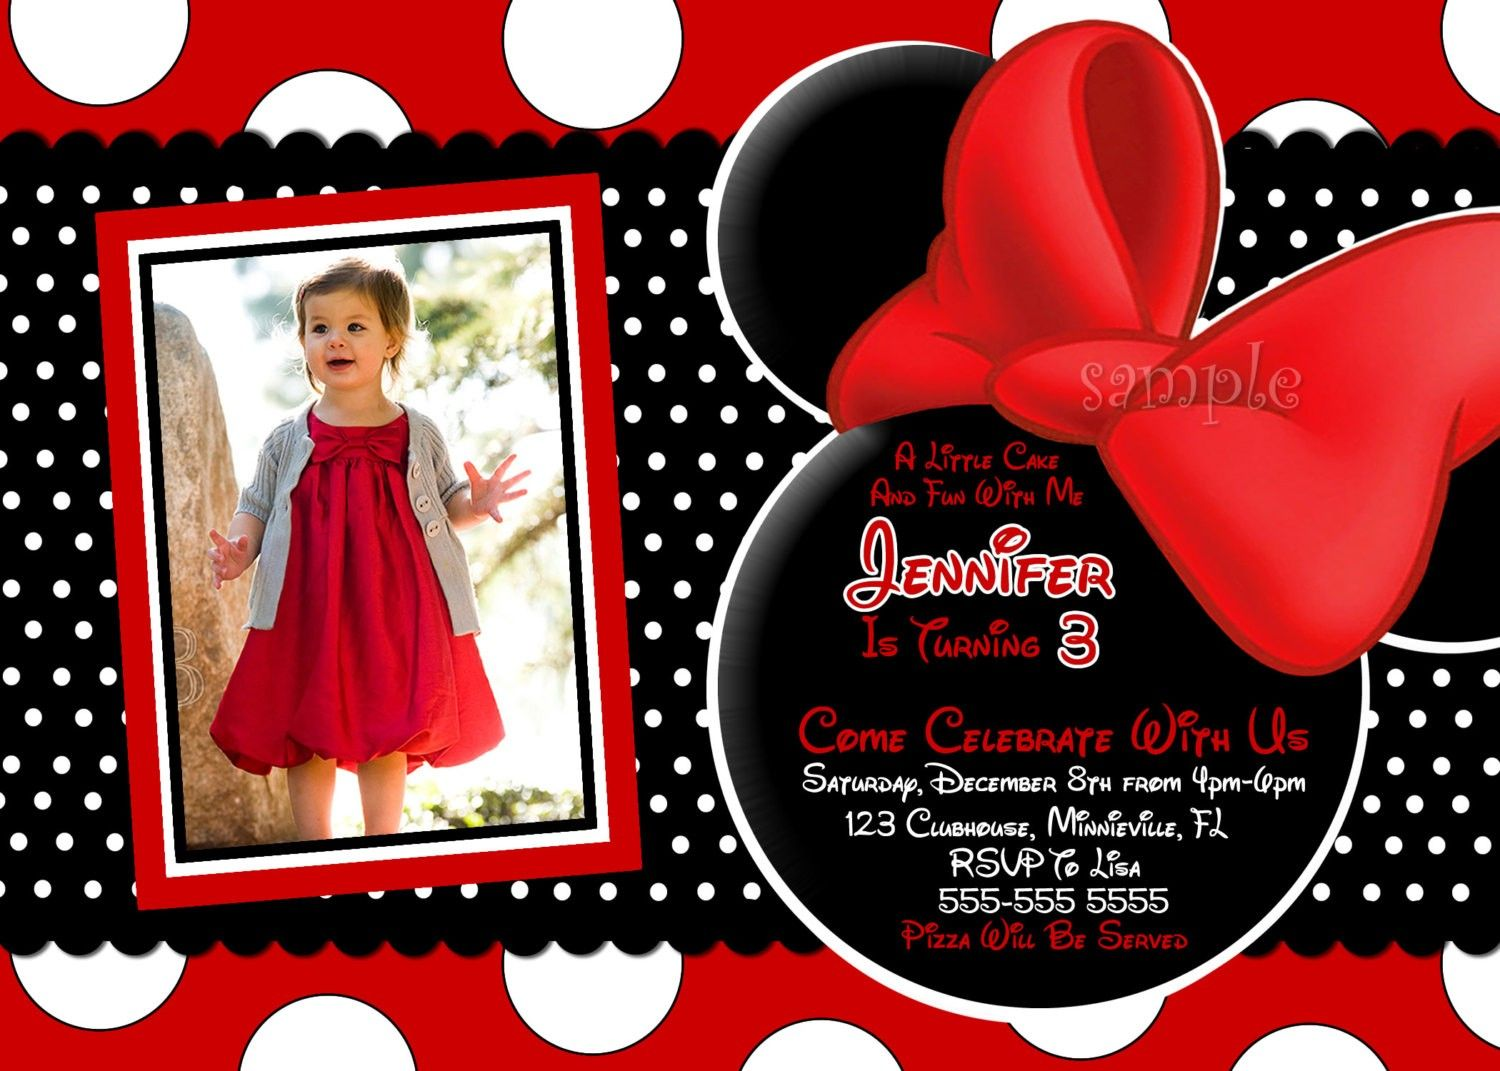 free minnie mouse birthday invitations templates  penélope's st, invitation samples